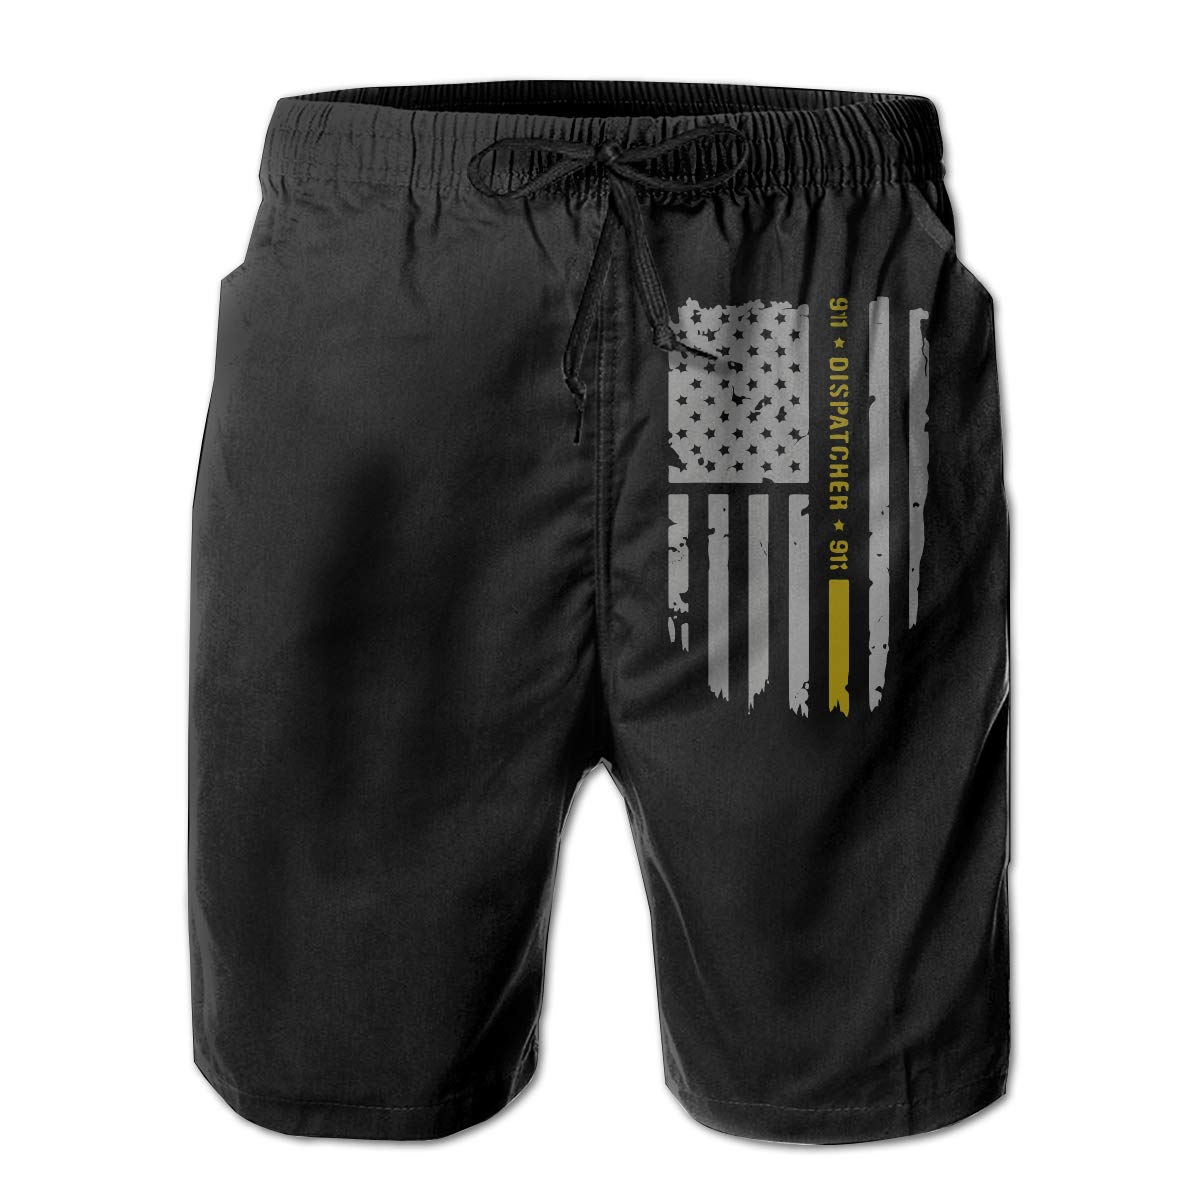 3D Printed Beach Shorts with Pockets Yt92Pl@00 Mens 100/% Polyester 911 Dispatcher Thin Gold Line Beachwear